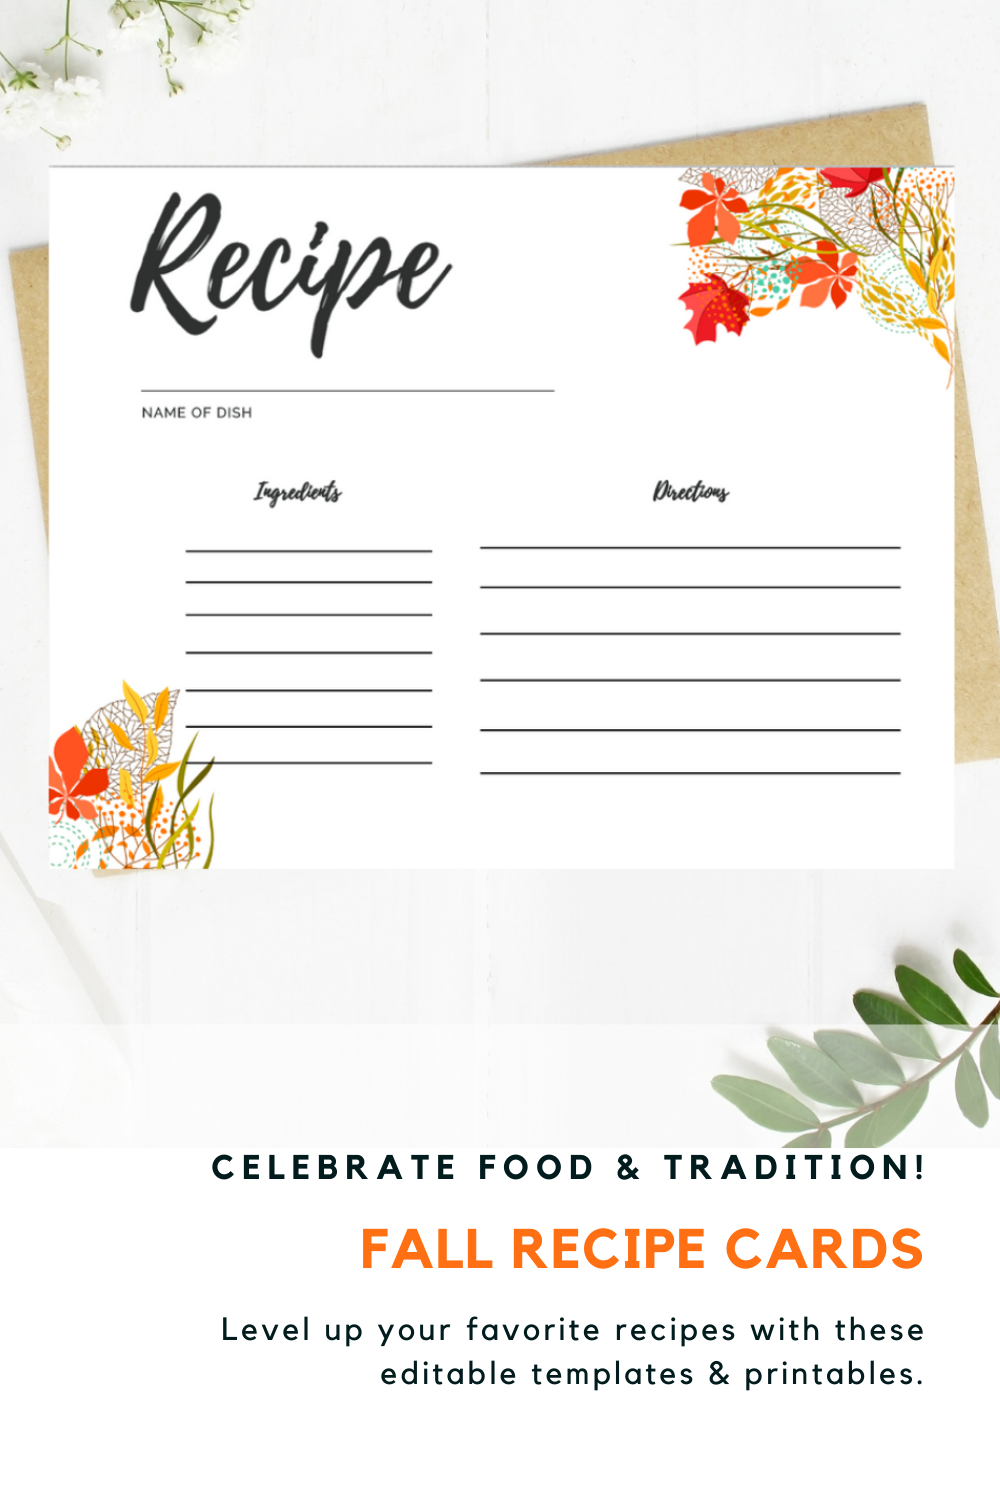 Recipe Cards Printable Floral Recipe Card 5 5 X 4 25 Recipe Etsy Printable Recipe Cards Recipe Cards Recipe Cards Template